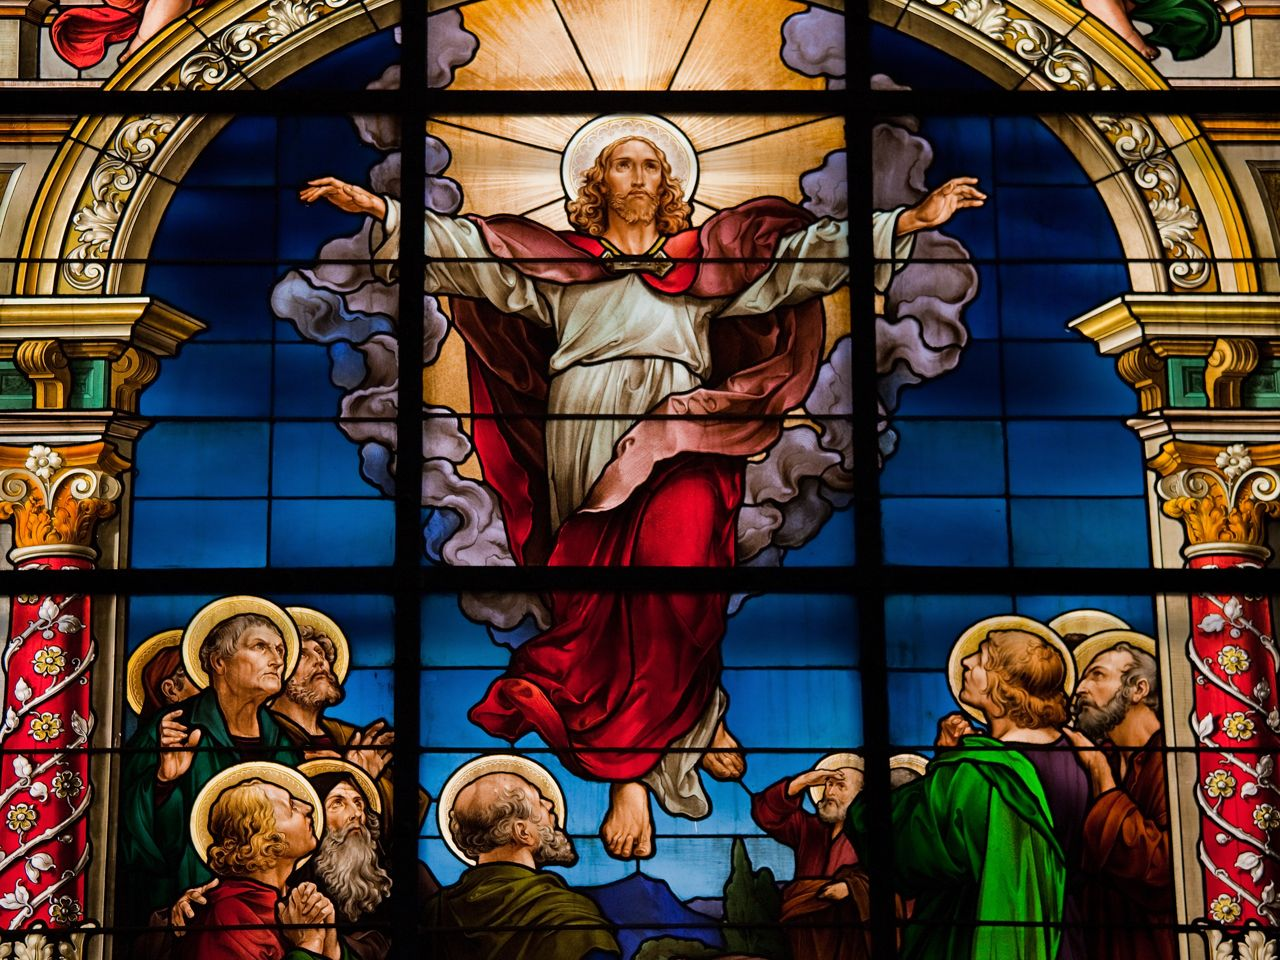 1280-120165549-easter-resurrection-of-jesus-christ.jpg